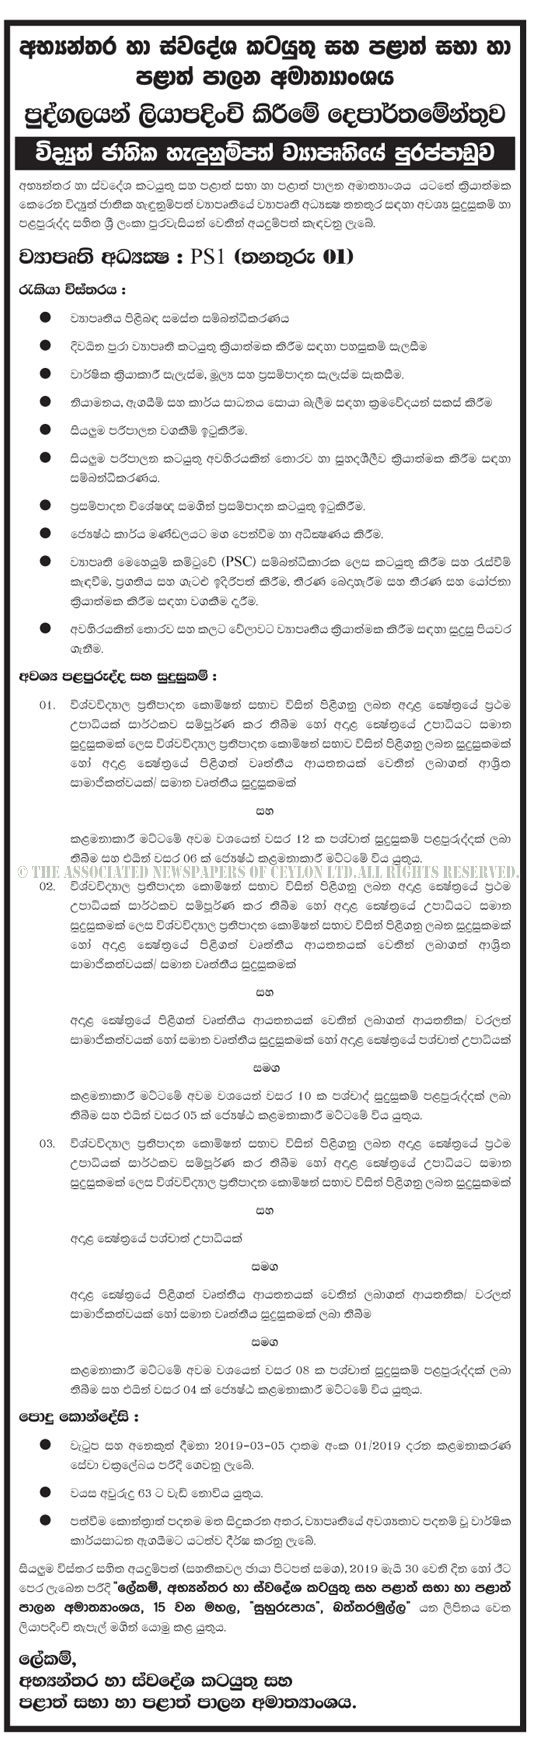 Project Director - Department for Registration of Persons